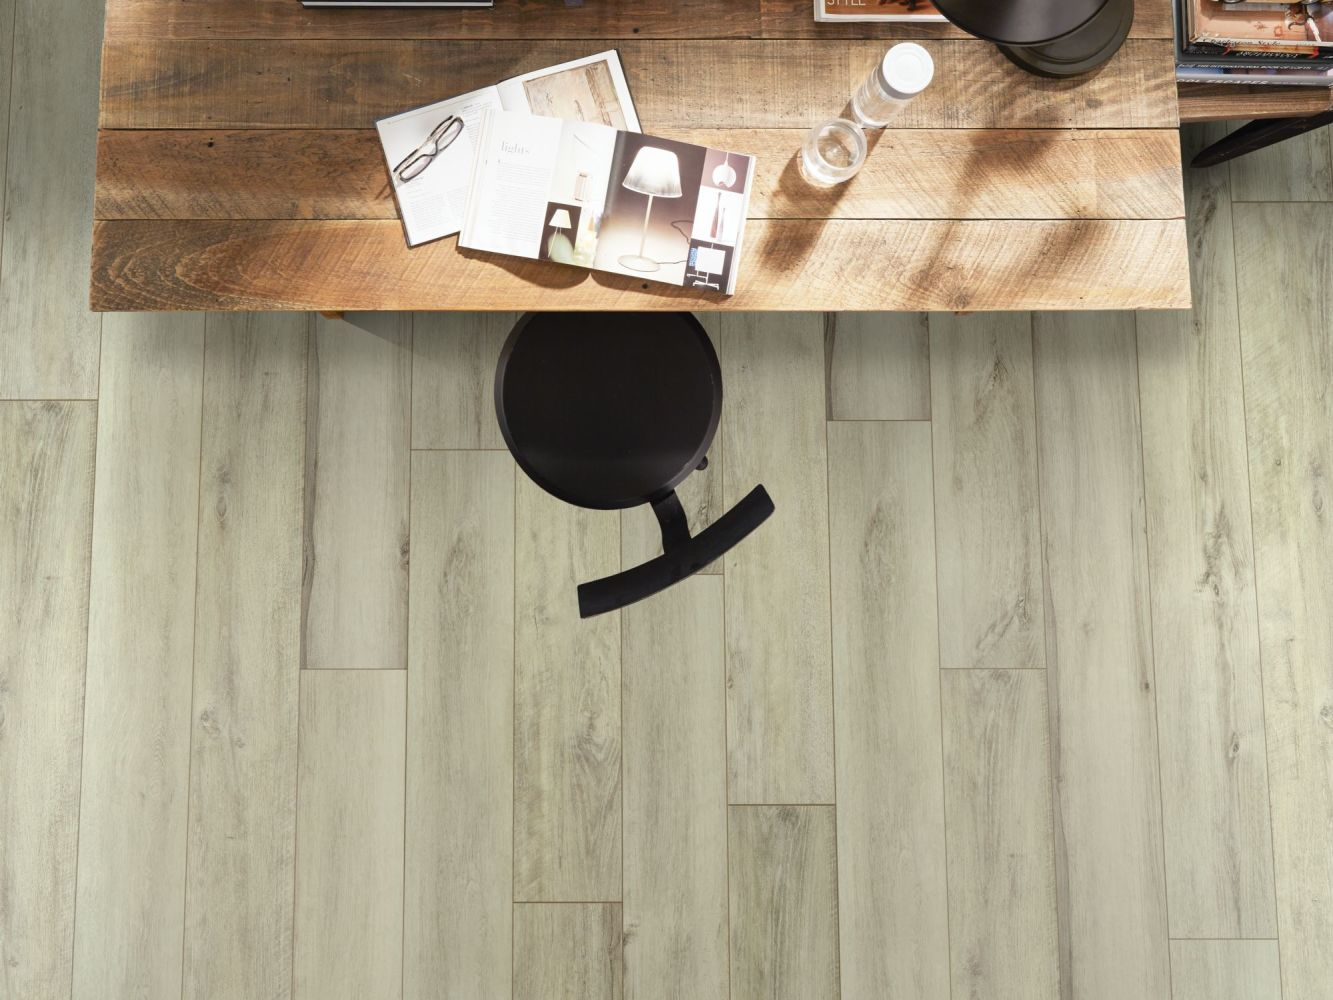 Shaw Floors Resilient Property Solutions Resolute XL HD Plus Seashell White Oak 01028_VE387